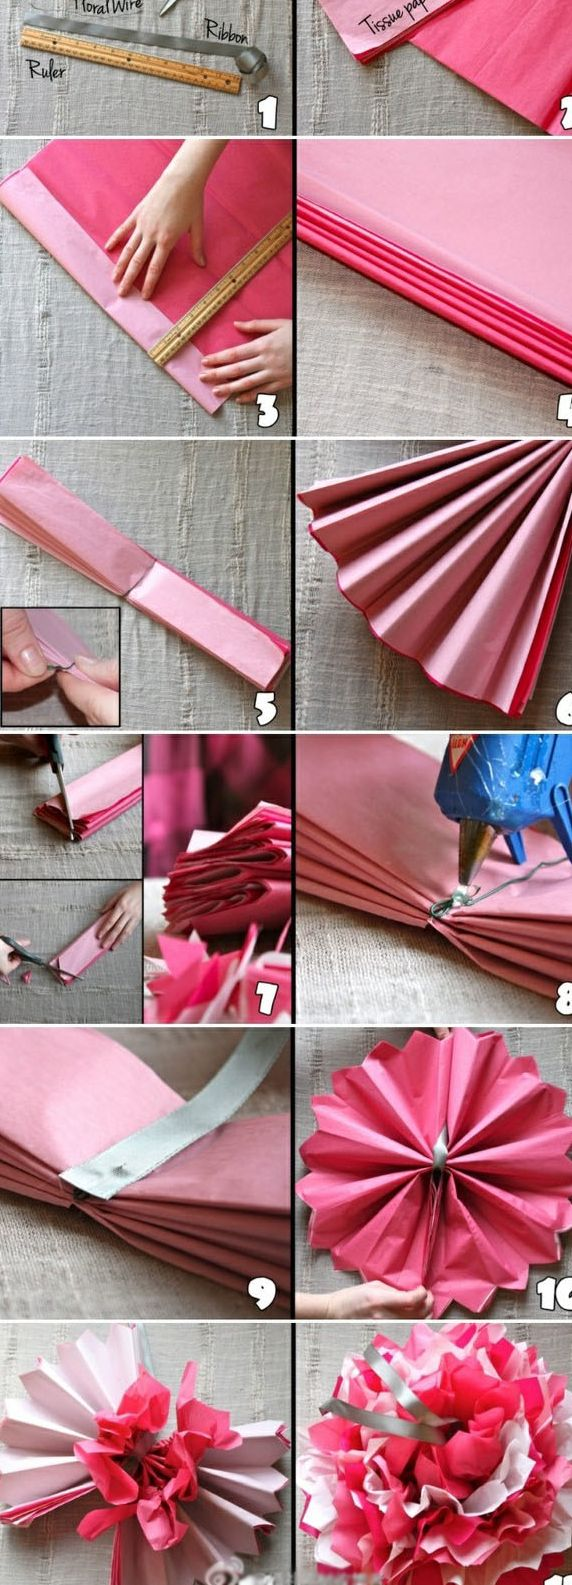 Diy Pom Poms Diy Crafts Home Made Easy Crafts Craft Idea Crafts Ideas Diy Ideas Diy Crafts Diy Idea Do It Yourself Diy Projects Diy Craft Handmade Party